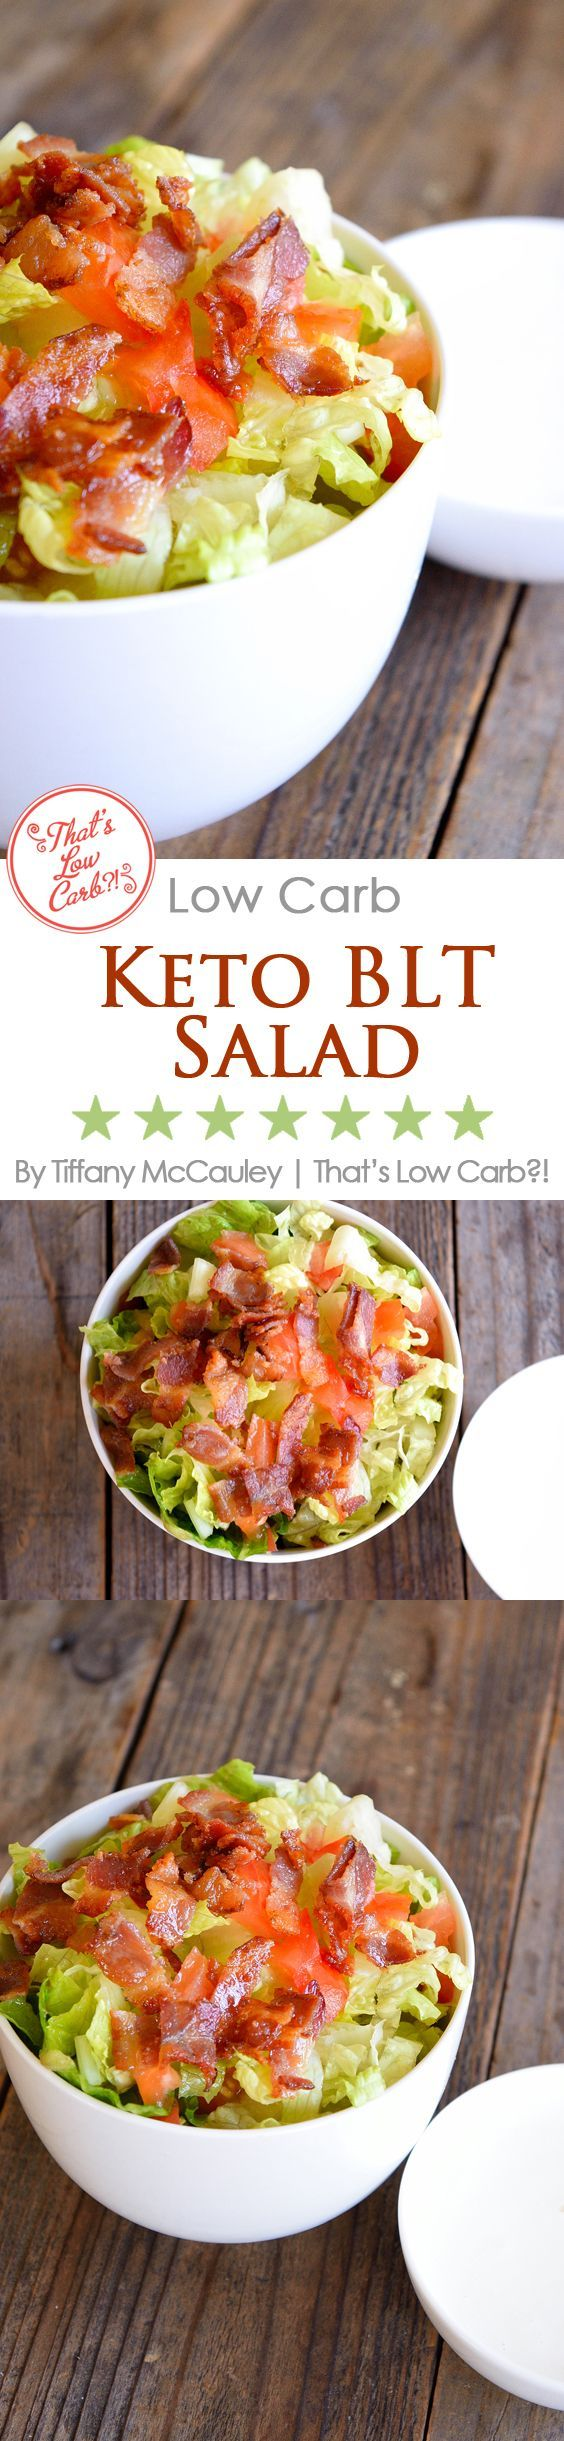 Low Carb Recipes | BLT Salad Recipe | Salad Recipes | Low Carb Salads | Recipes | Lunch Recipes